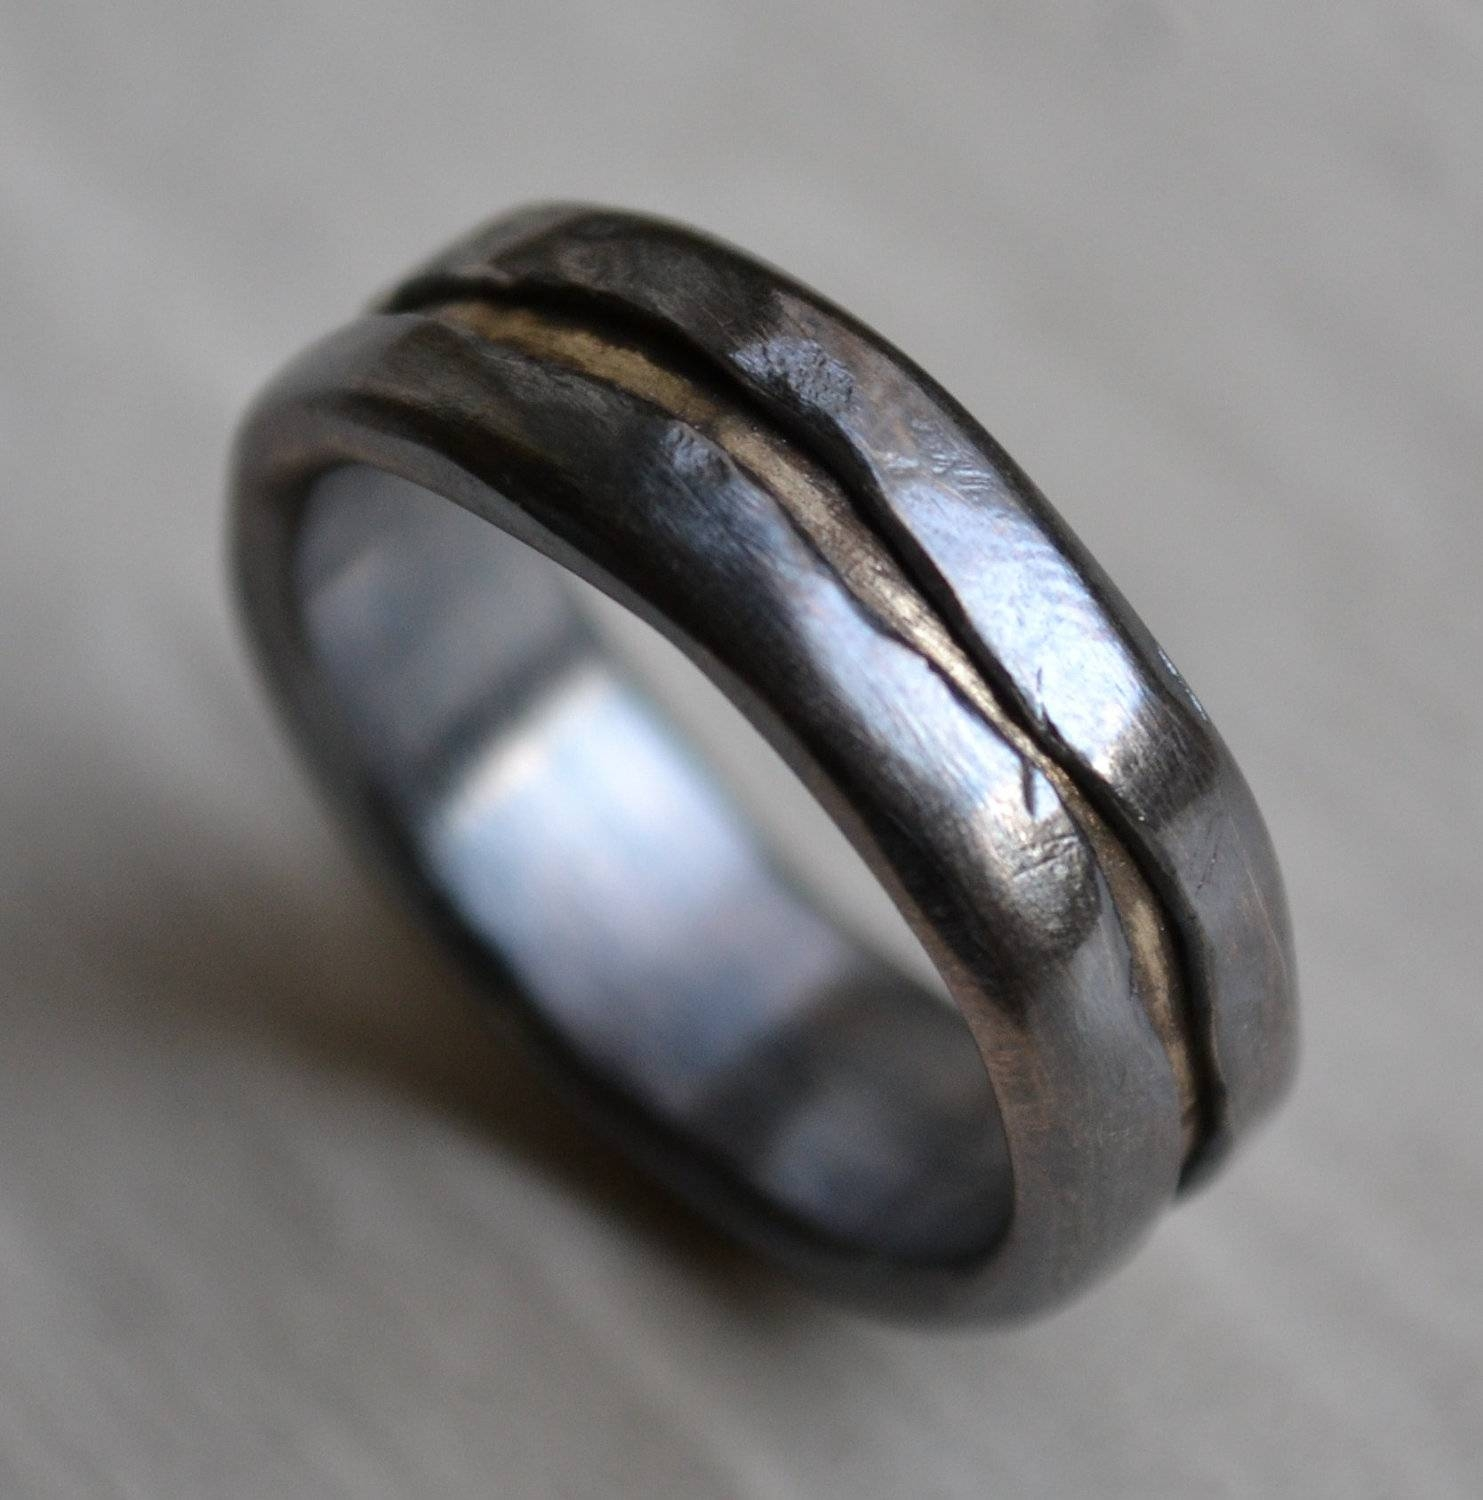 Unique Men's Wedding Rings In Carving Intended For Cool Male Wedding Bands (View 14 of 15)